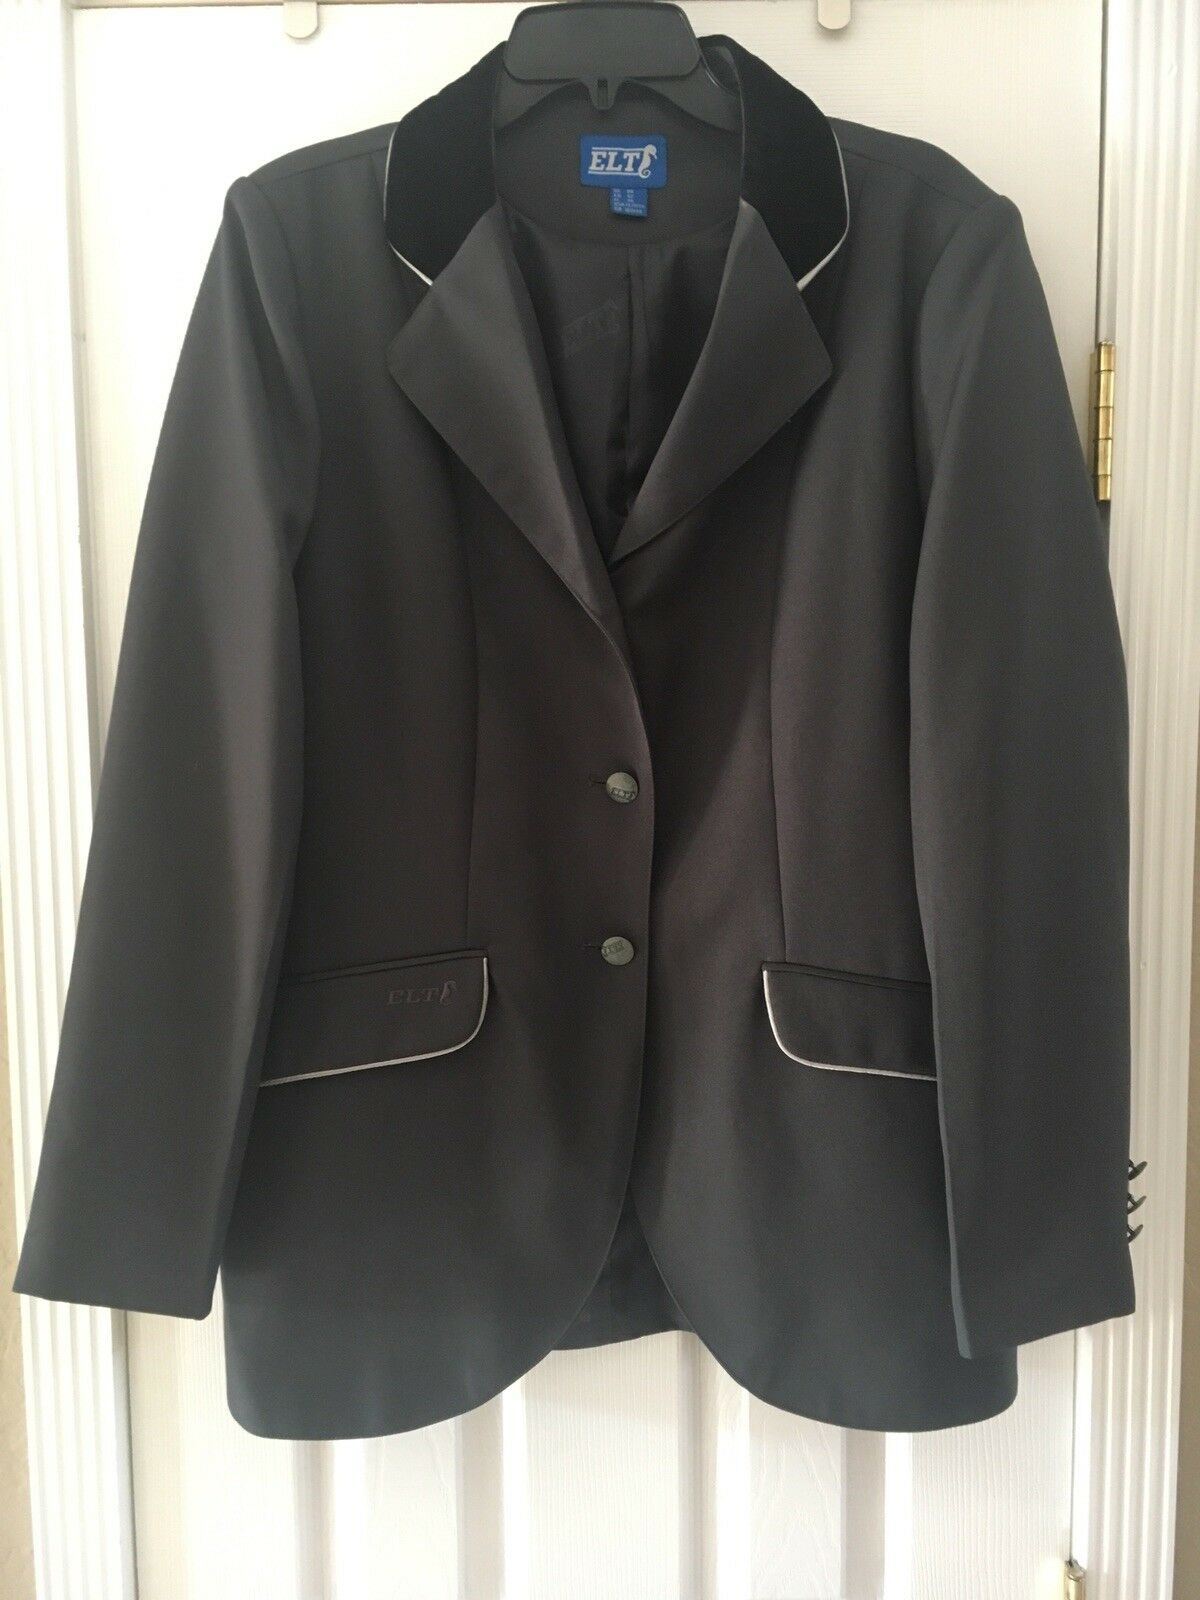 Dressage show jumping show coat